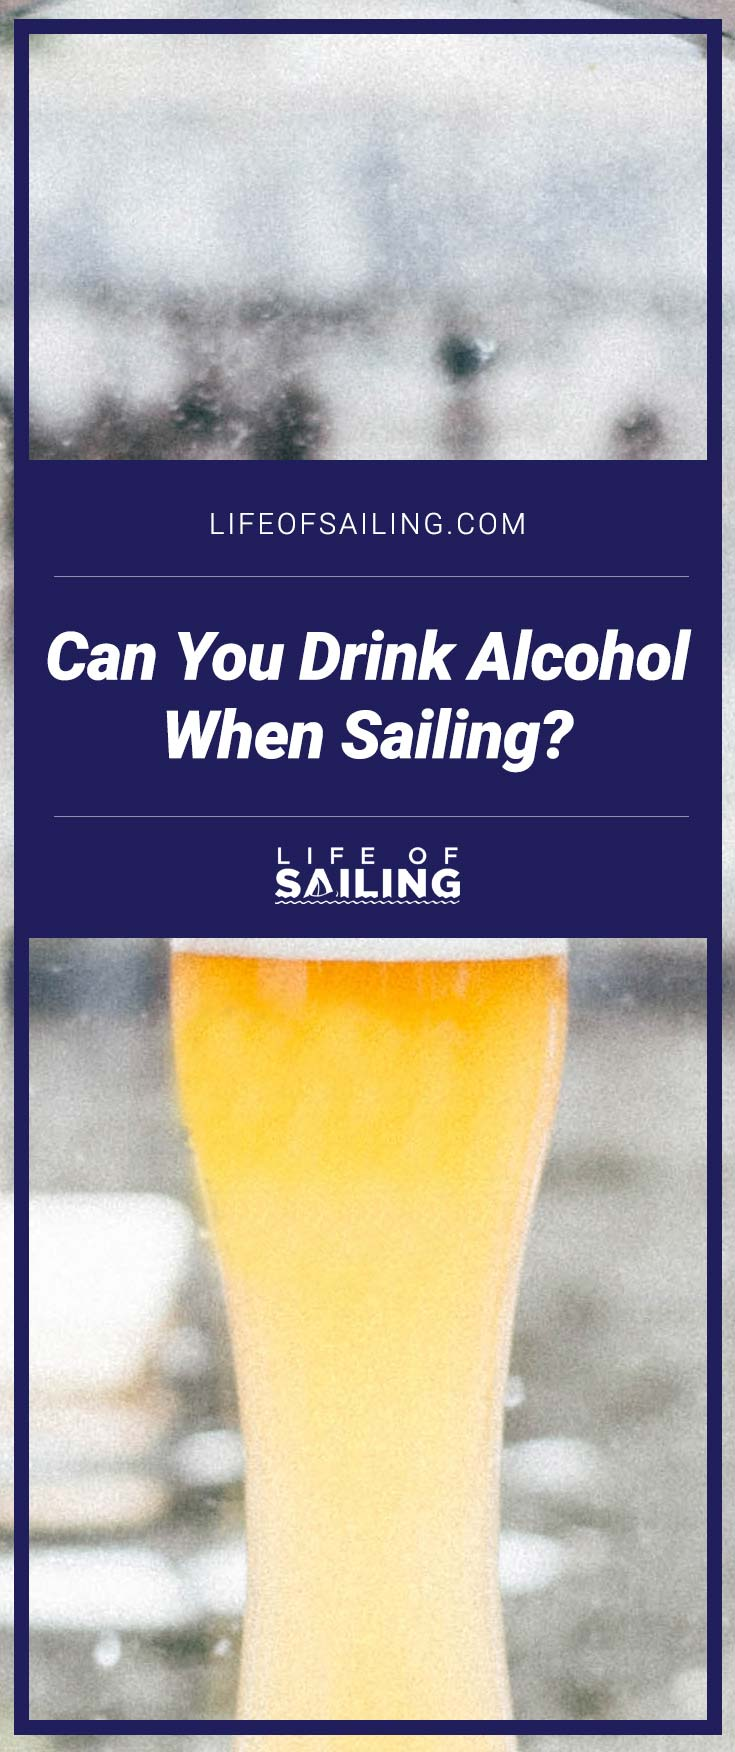 Can You Drink Alcohol When Sailing?